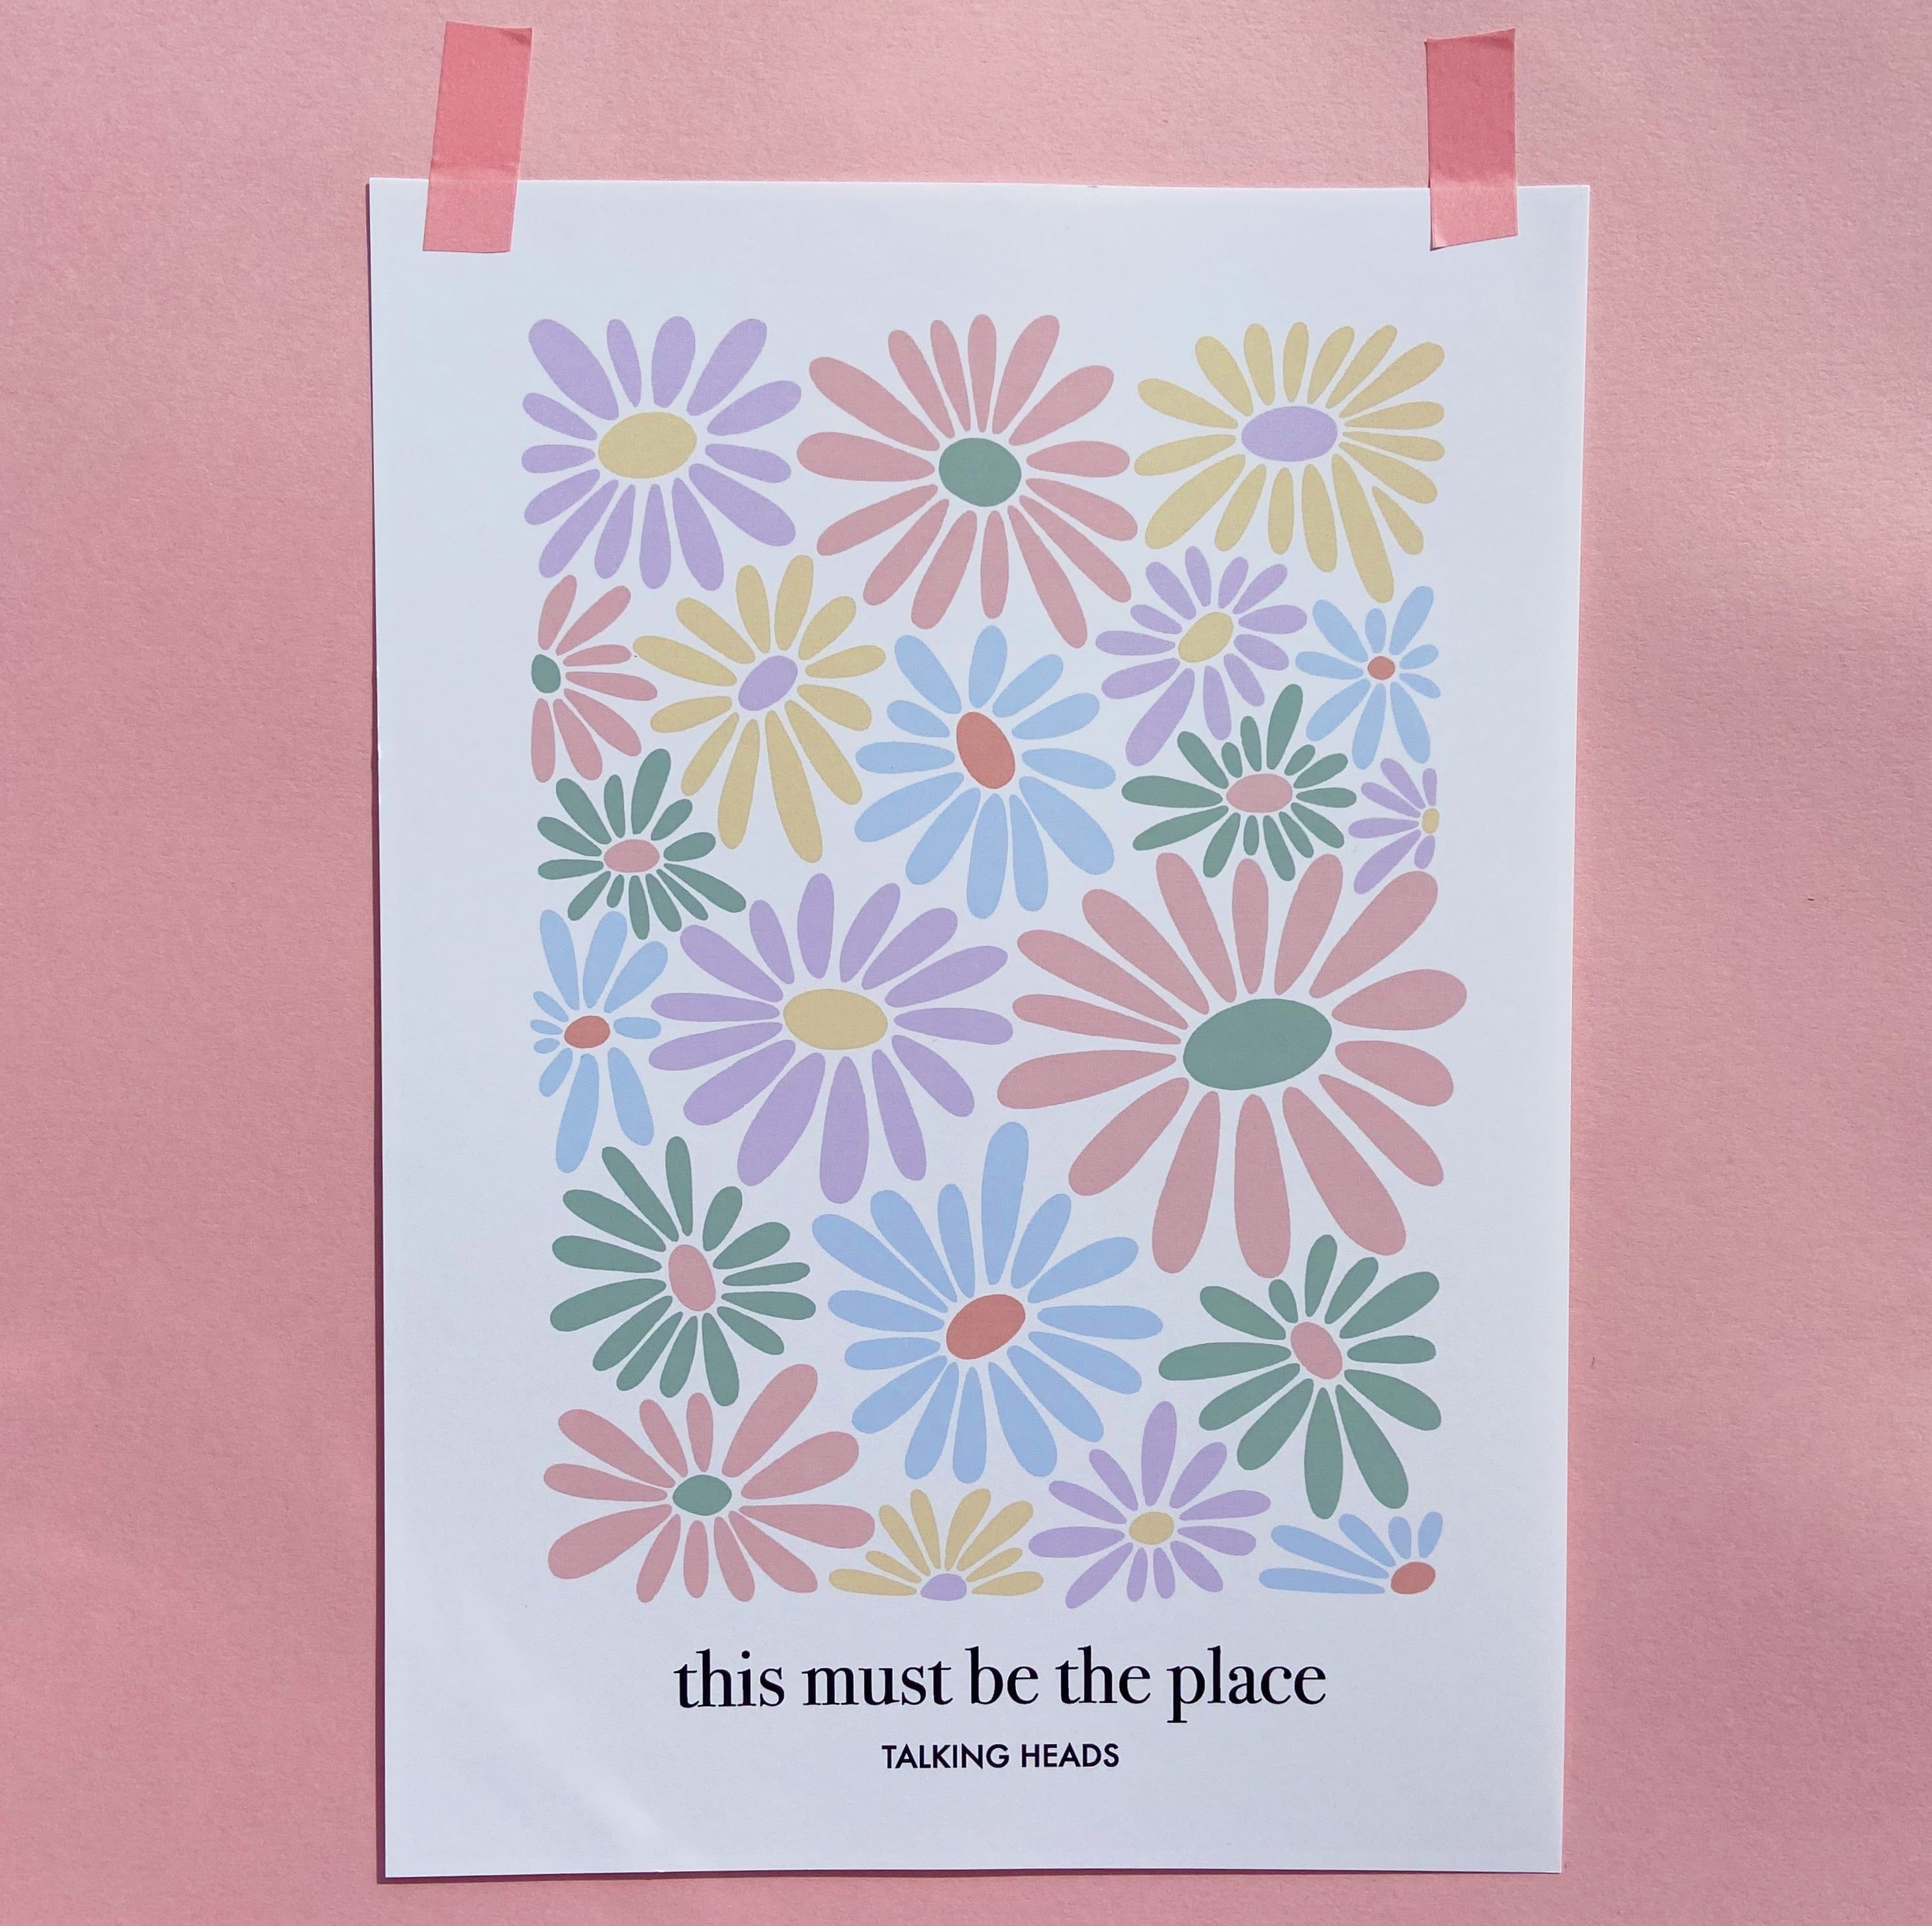 This Must Be The Place - Talking Heads Floral Print - A4